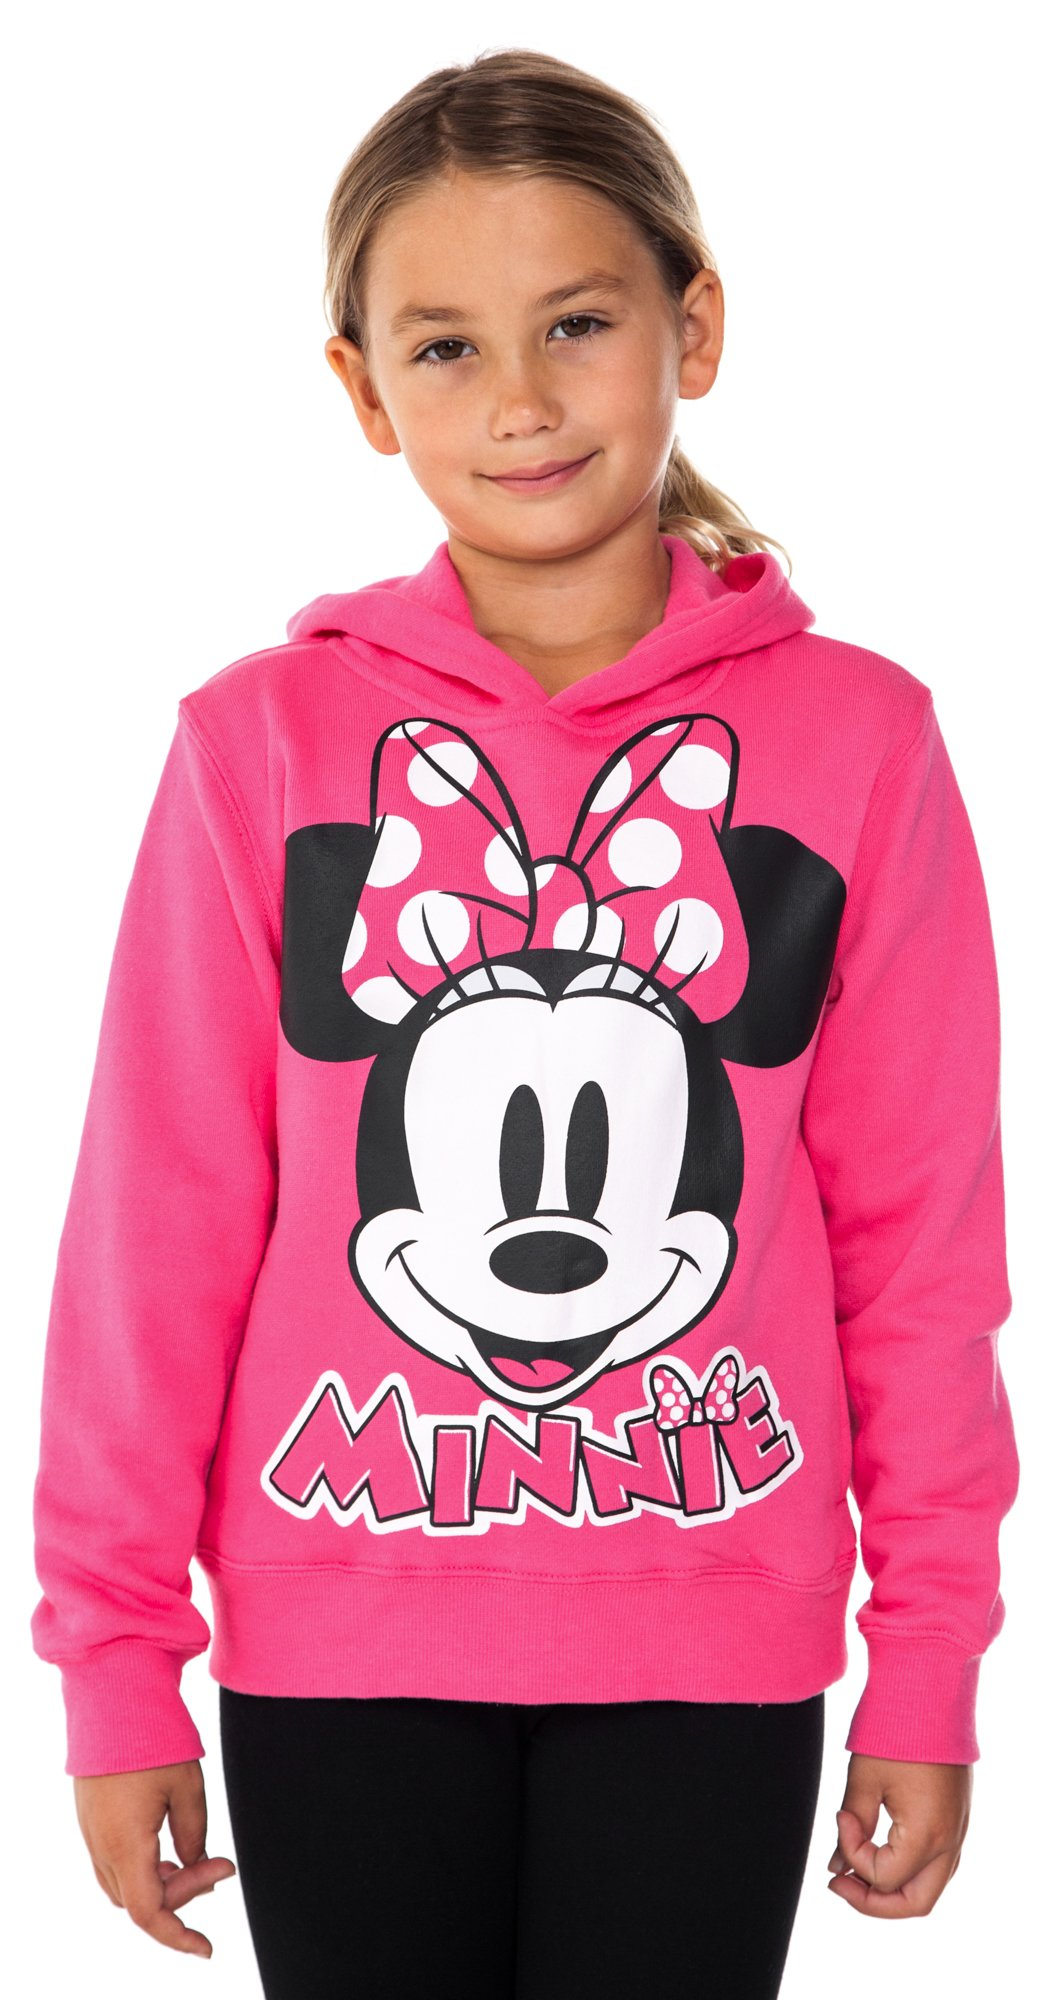 Disney Girls Minnie Mouse Pied Fleece Hoodie (Small, Pink)